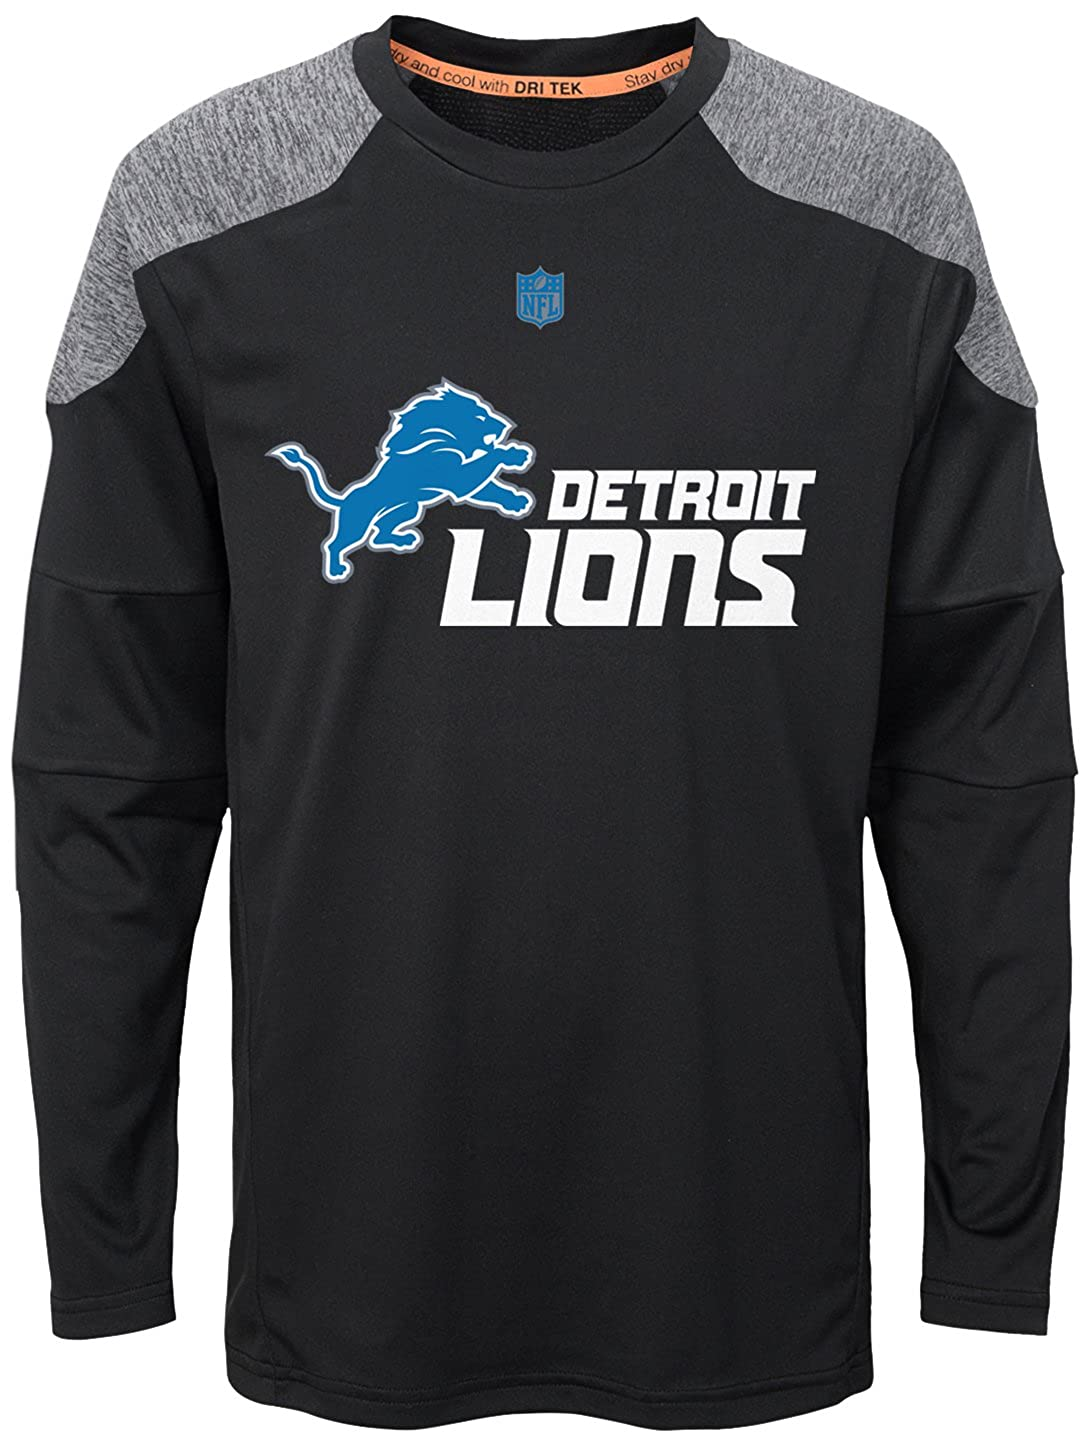 4 Outerstuff NFL Boys 4-7Gamma Long Sleeve Performance Tee-Black-S Detroit Lions